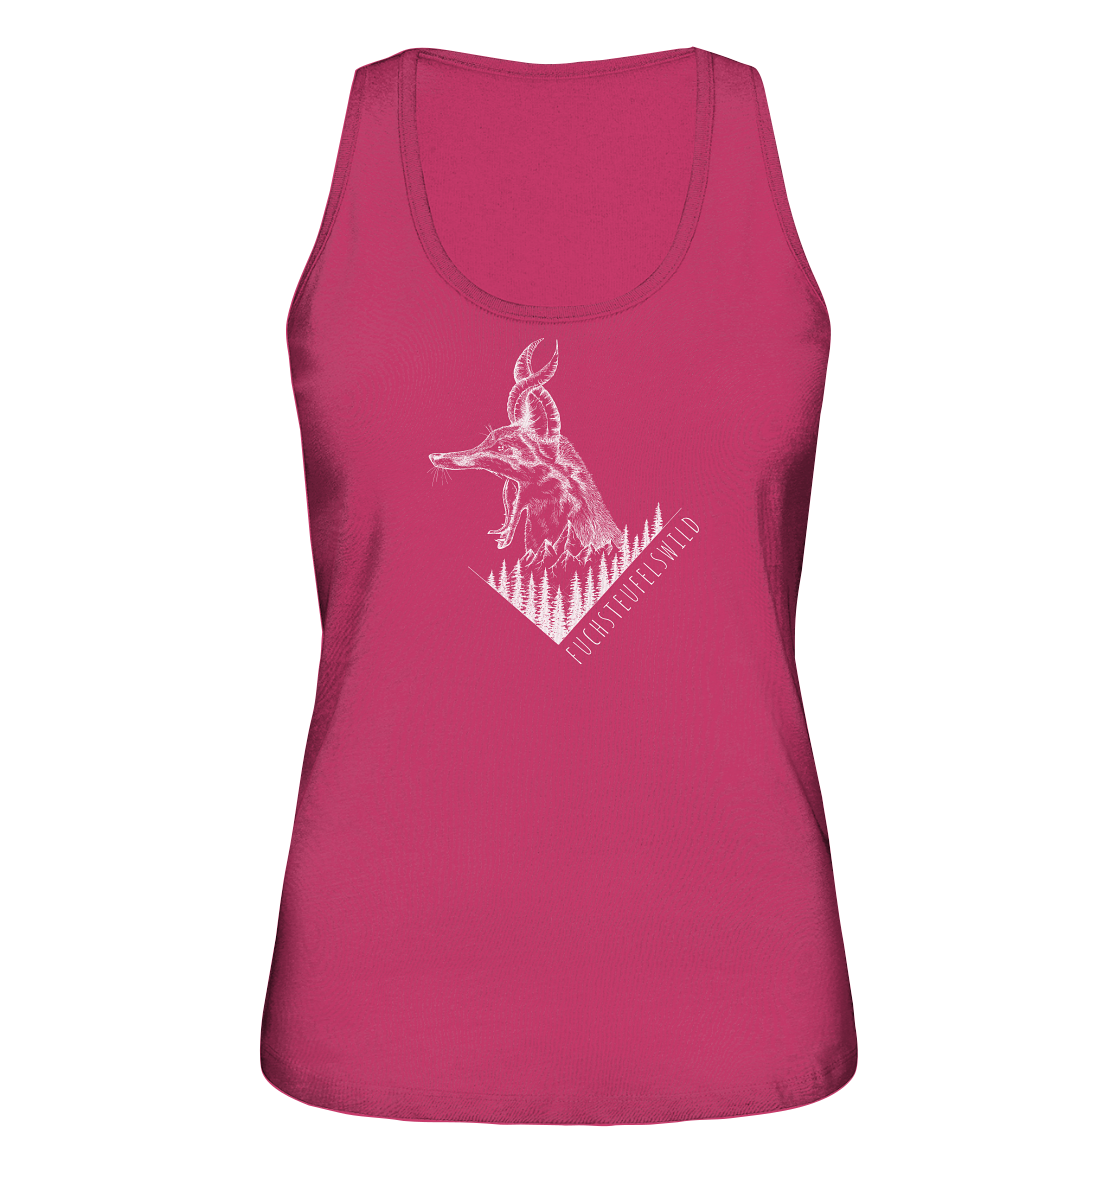 front-ladies-organic-tank-top-c63a6a-1116x-12.png